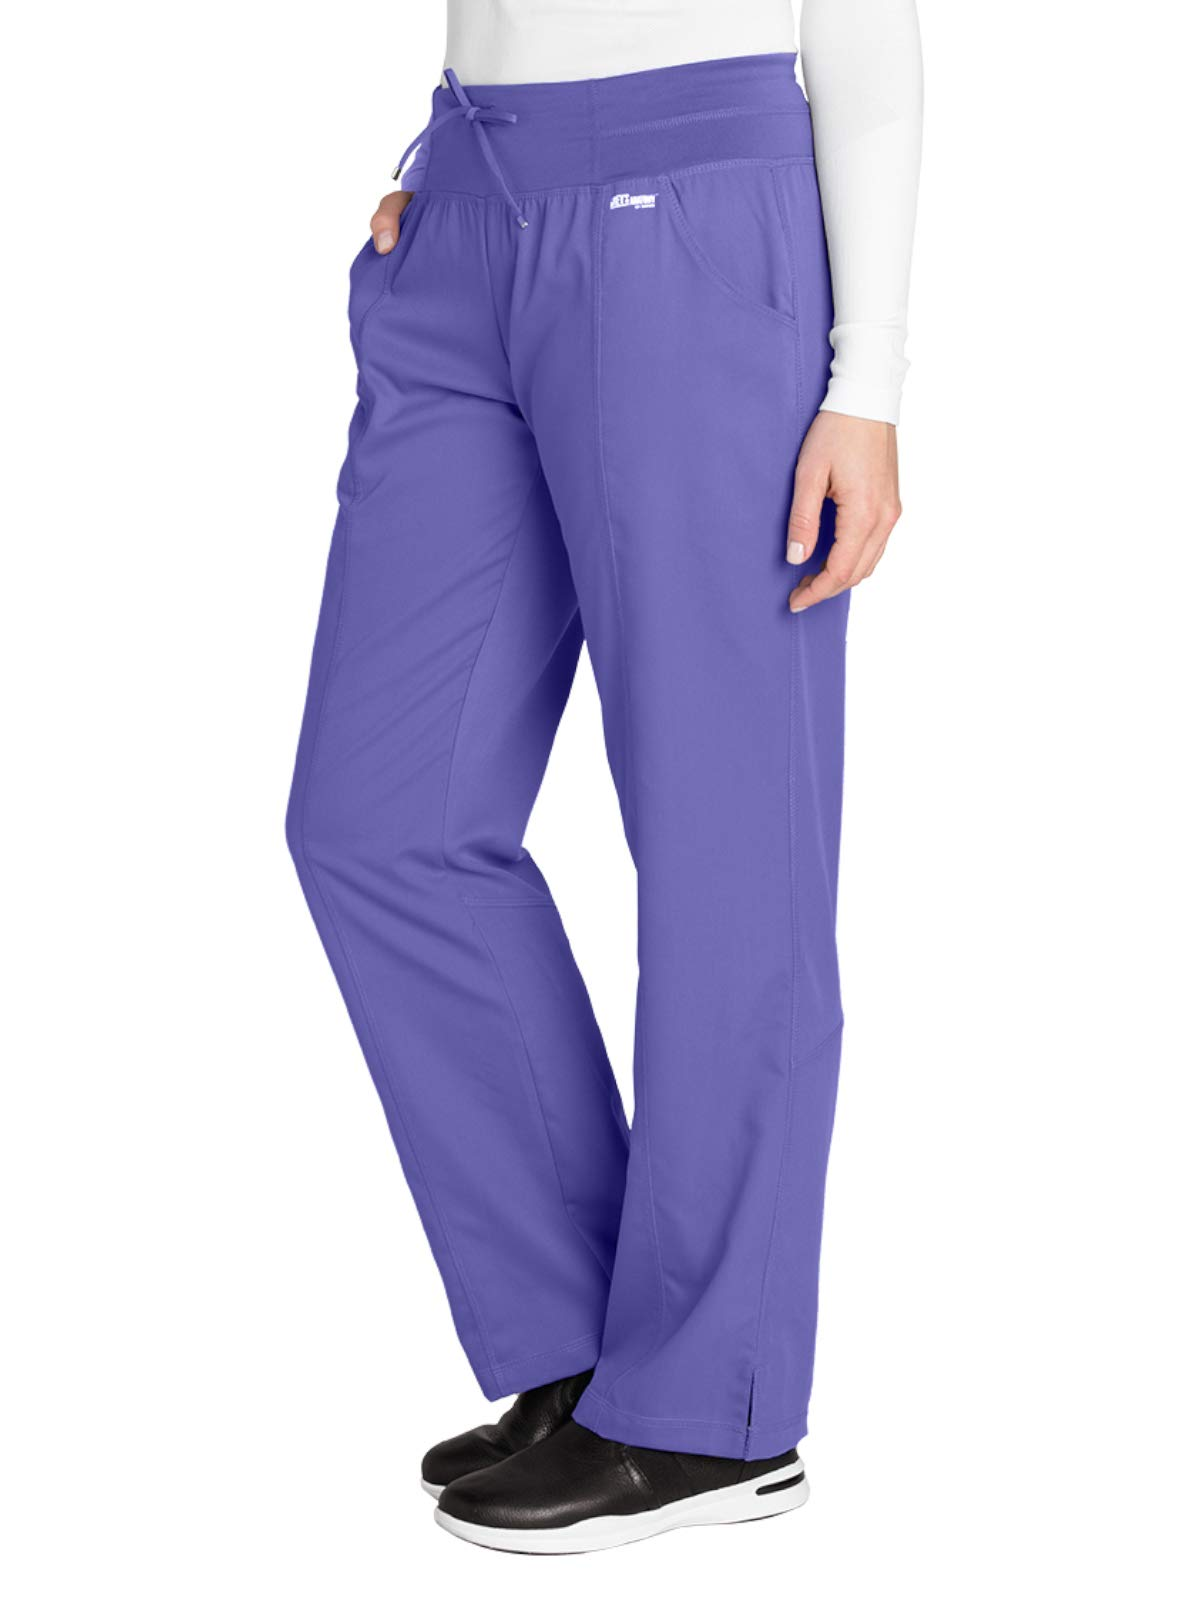 Grey's Anatomy Active 4276 Yoga Pant Passion Purple M Tall by Barco